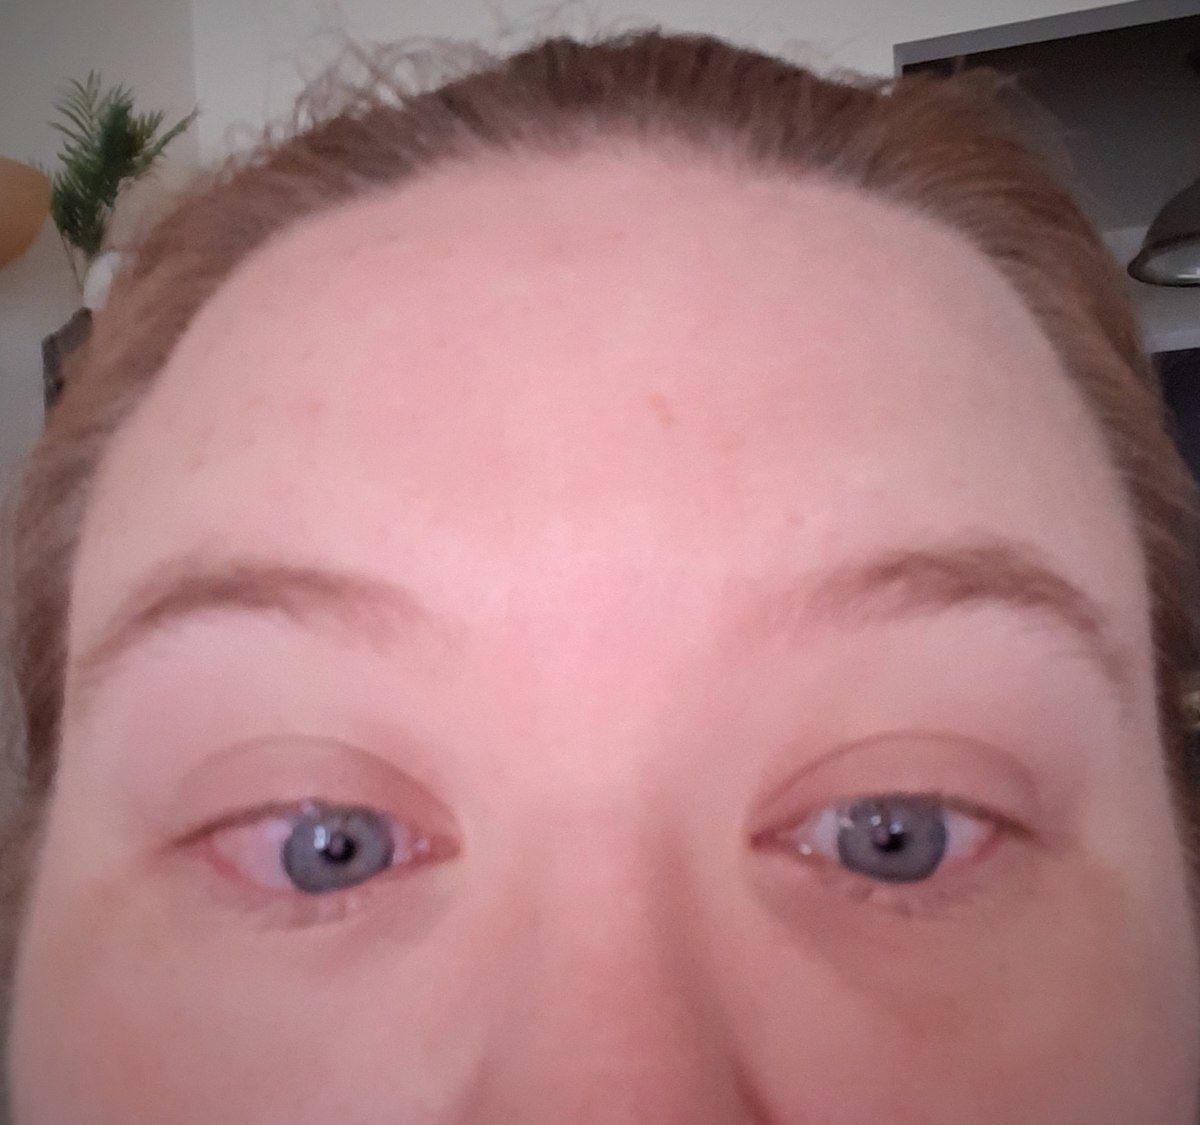 To decrease puffiness, I cut up a cucumber and placed the slices on my eyes. What resulted was itchiness, redness, and pain. Never again.